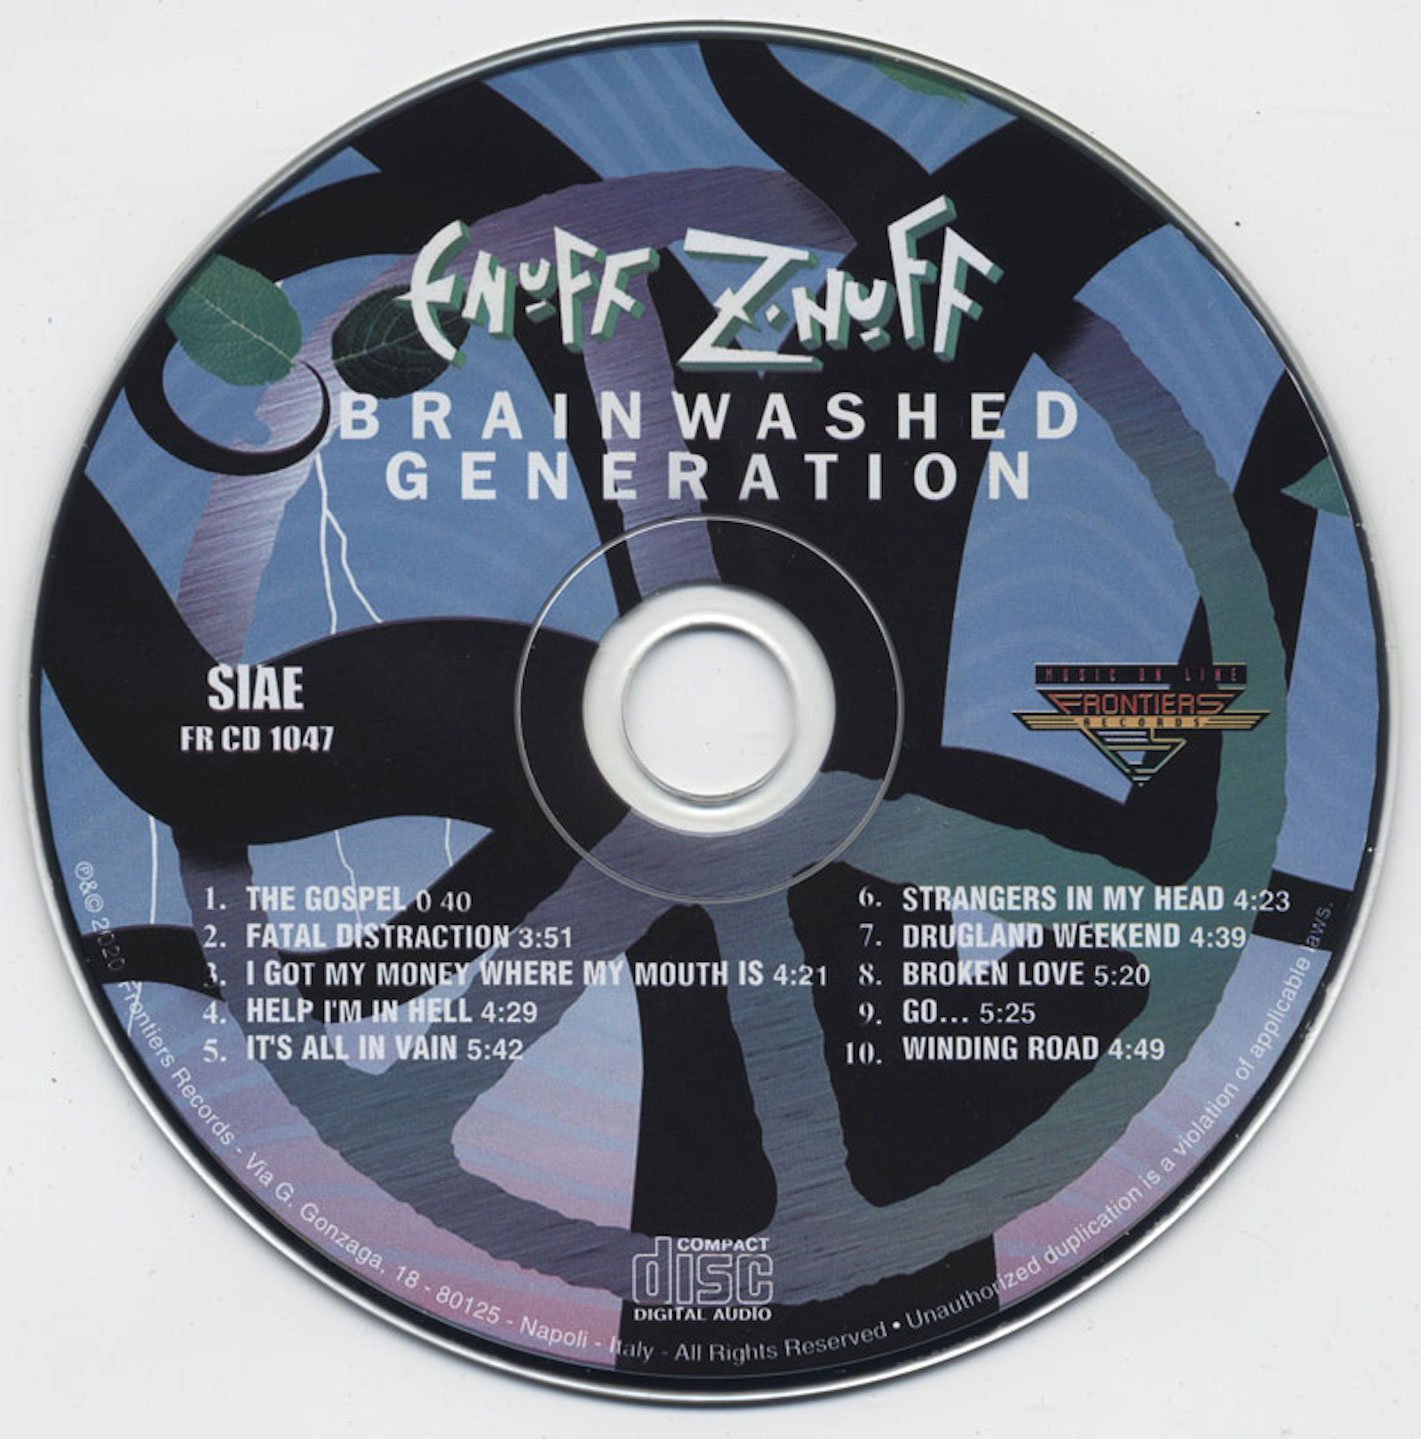 cd cover Enuff Z'nuff - Brainwashed Generation 2020 Cd Cover